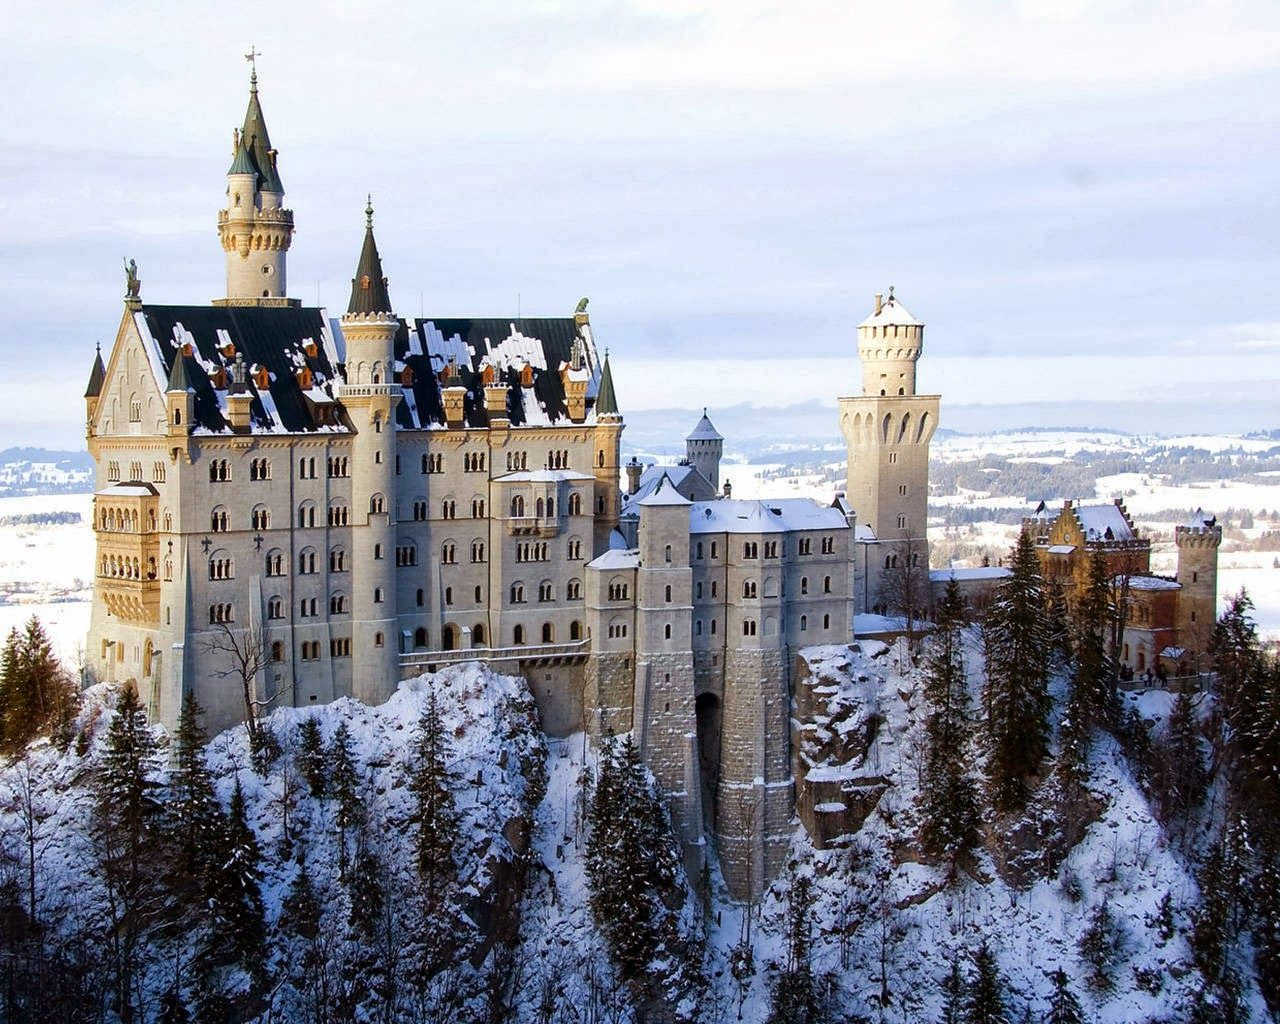 Hohenzollern Castle Snow Falling Germany Germany Castles Neuschwanstein Castle Castle Pictures